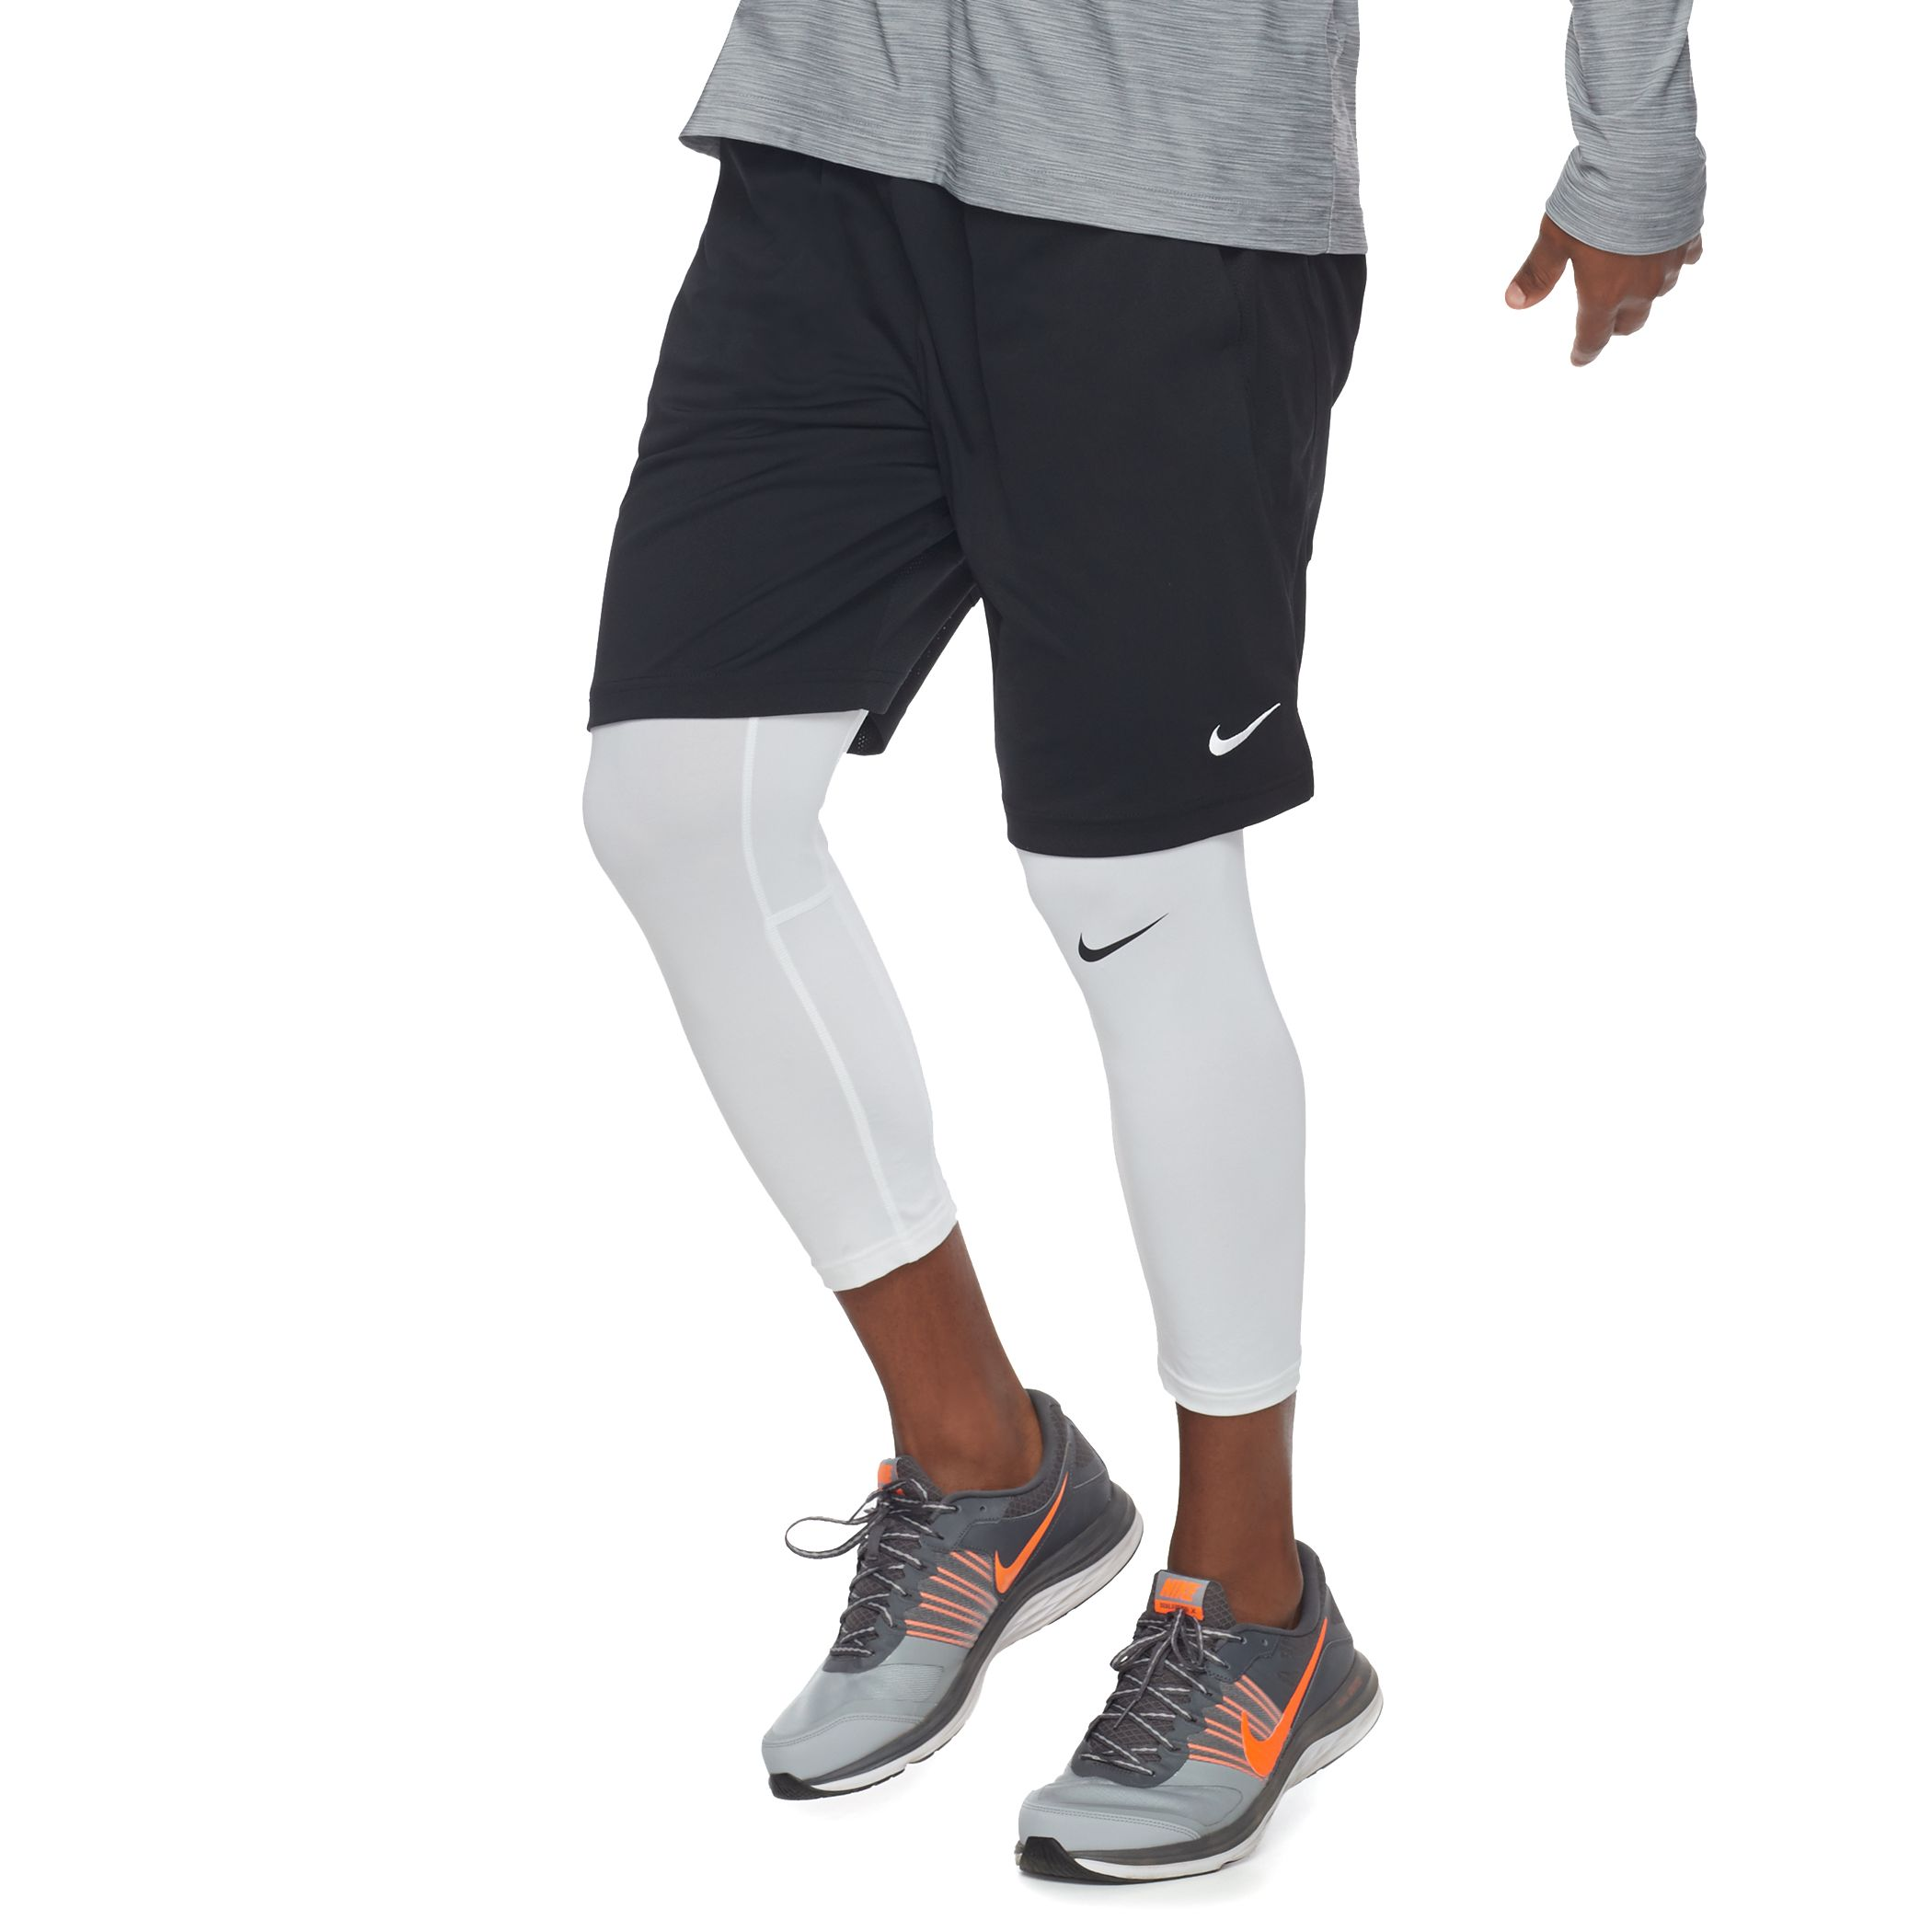 9e2dedcca5 Mens Compression Pants - Bottoms, Clothing | Kohl's